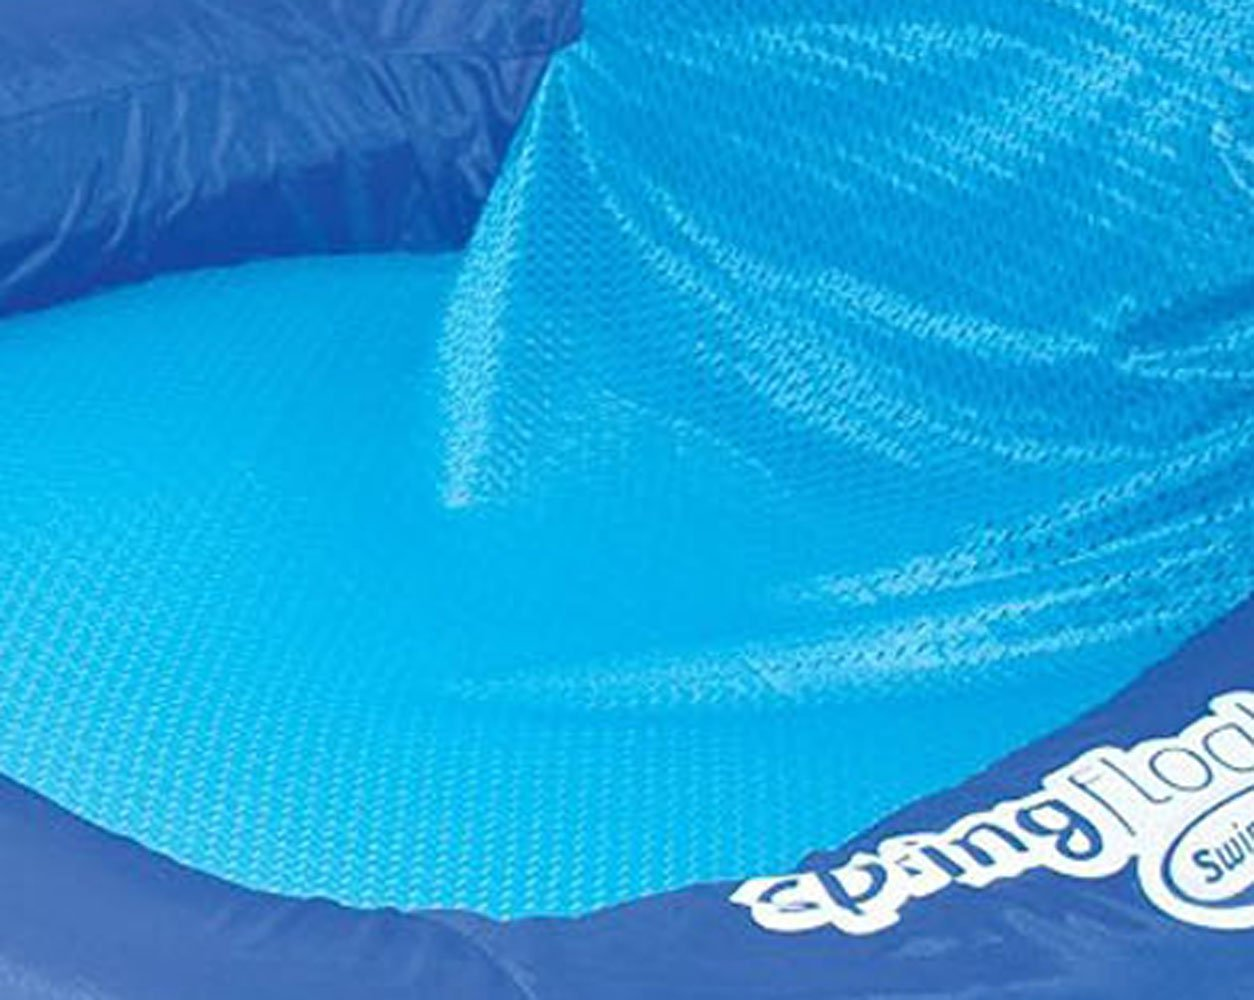 SwimWays Spring Float Recliner Pool Lounge Chair w/ Sun Canopy Blue | 13022 - Walmart.com  sc 1 st  Walmart & SwimWays Spring Float Recliner Pool Lounge Chair w/ Sun Canopy ... islam-shia.org